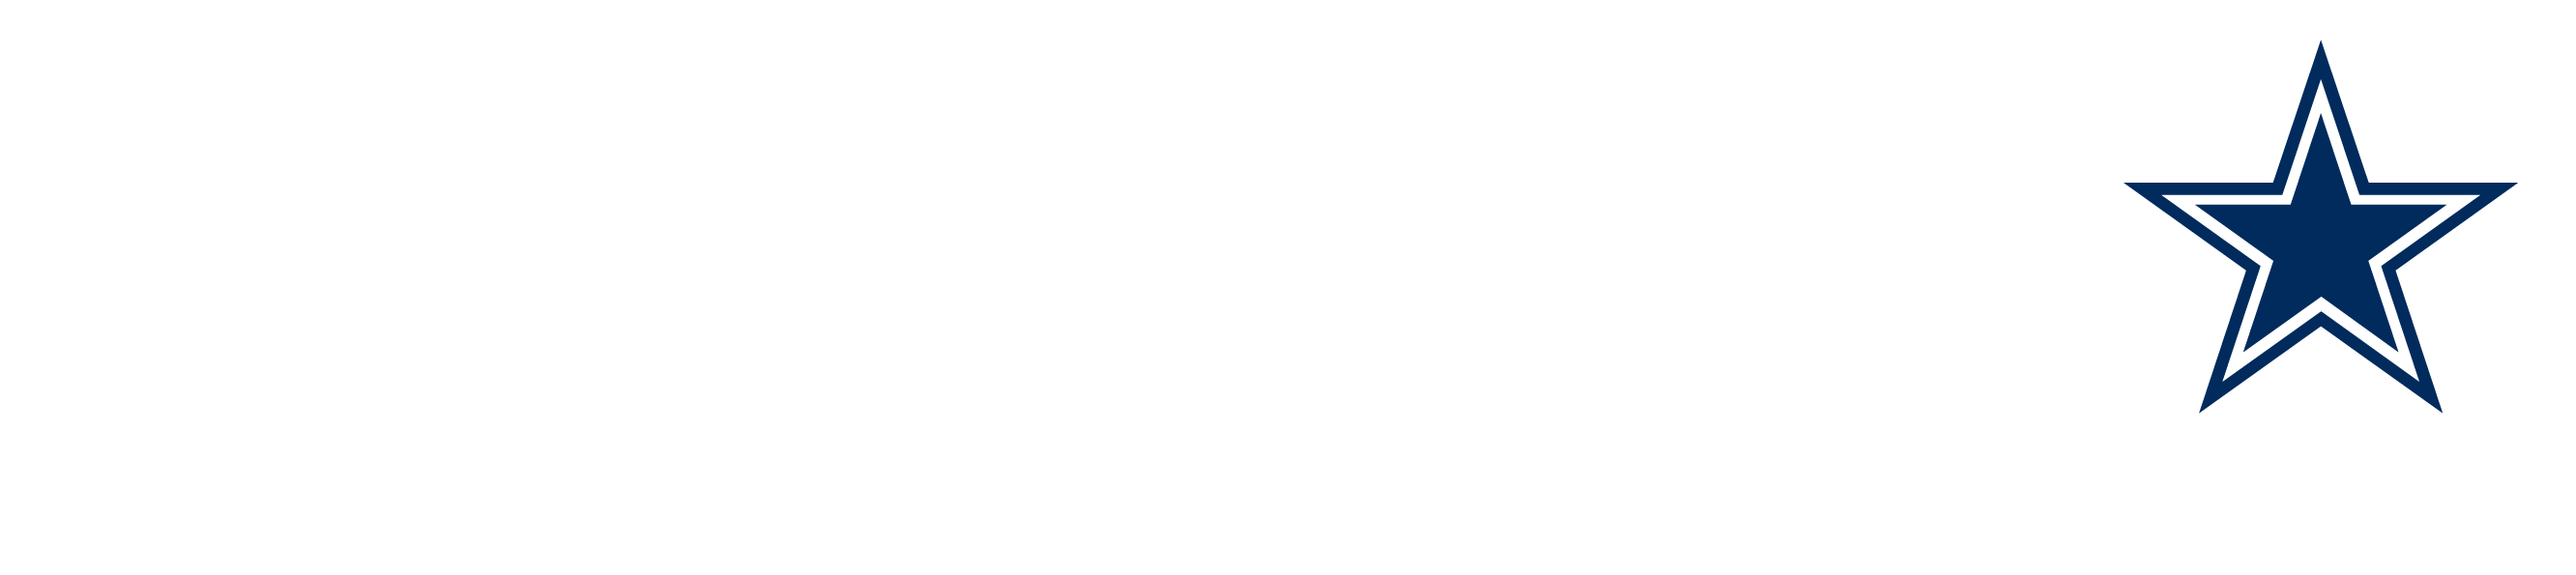 CENTURY 21 Judge Fite - The Official Real Estate Company of The Dallas Cowboys